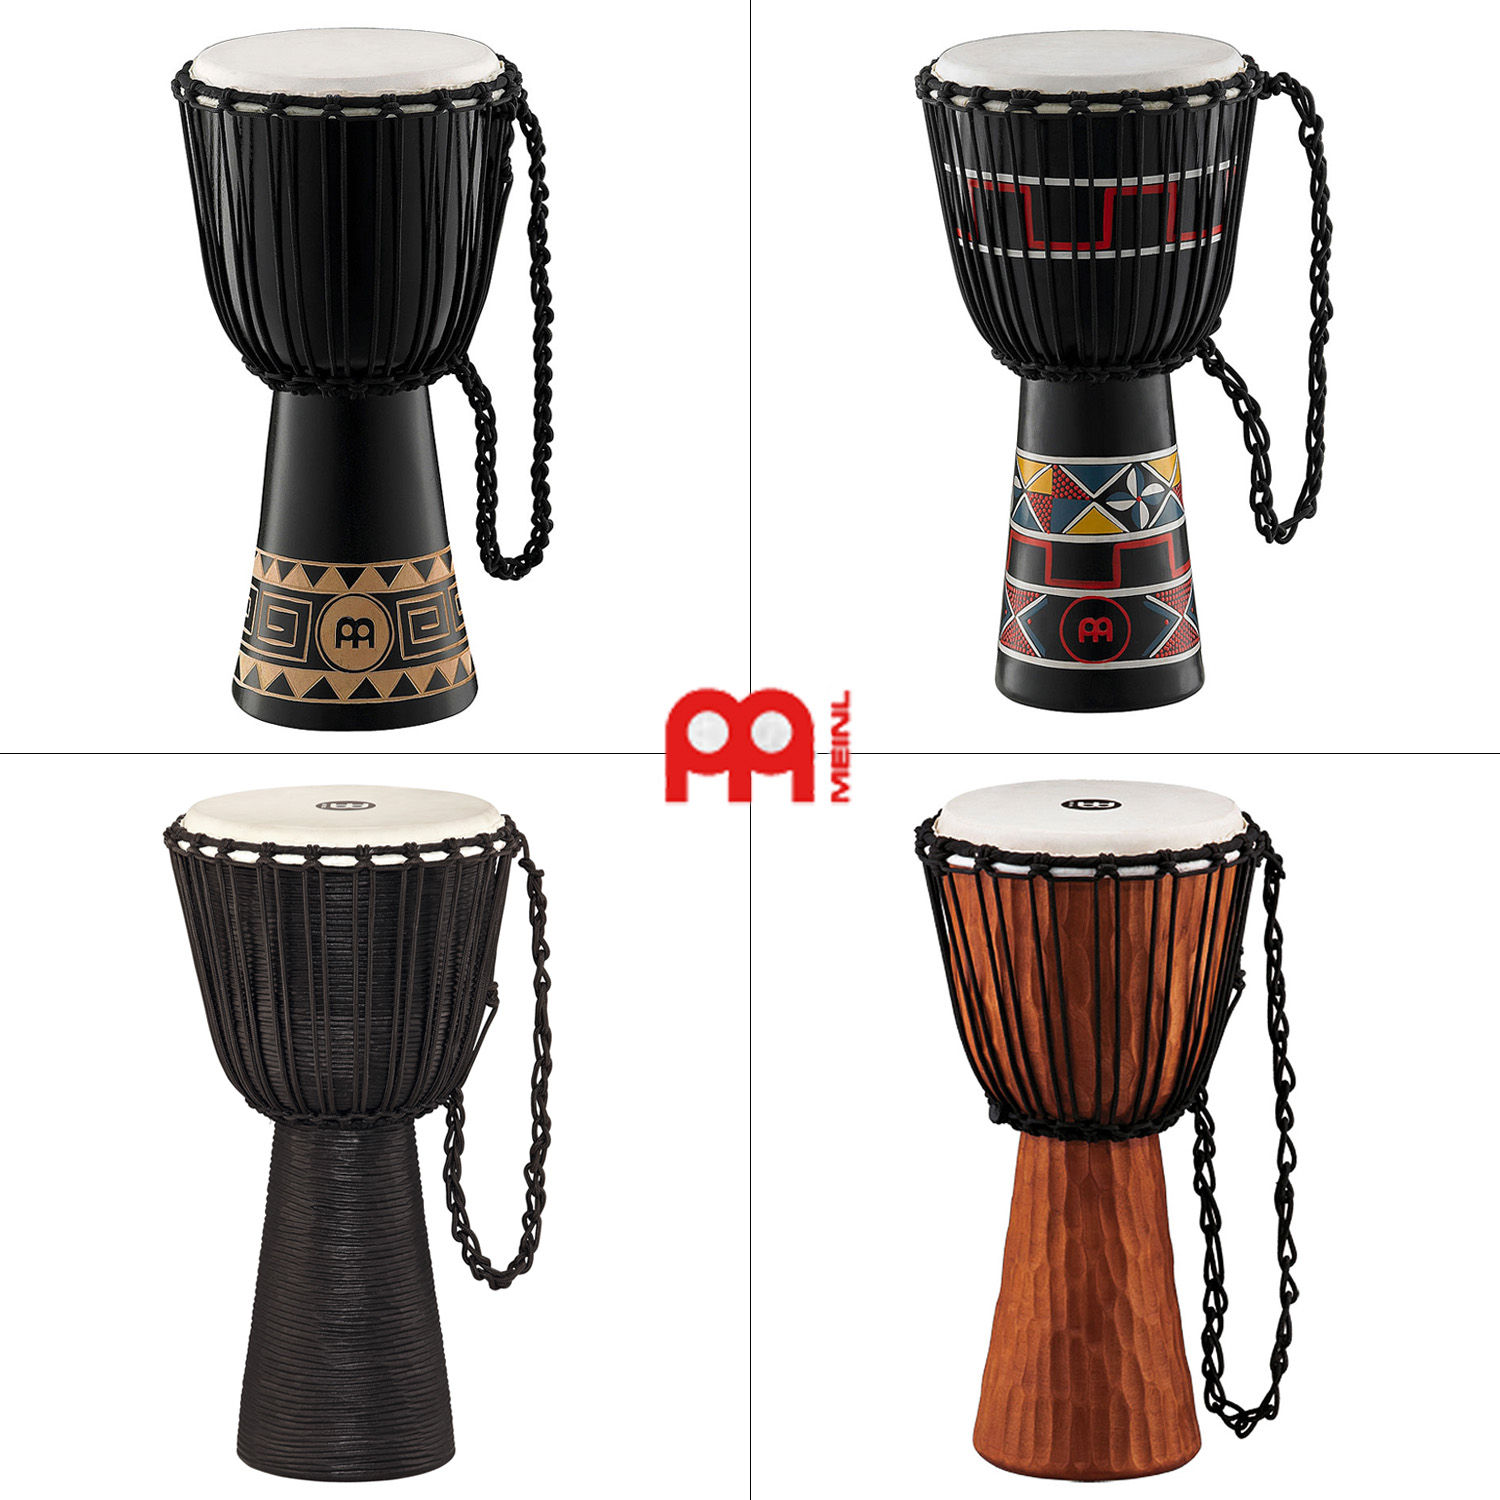 Germany imported meinl hdj maier djembe drum tambourine entire 12-inch wooden shipping to send a variety of 10!